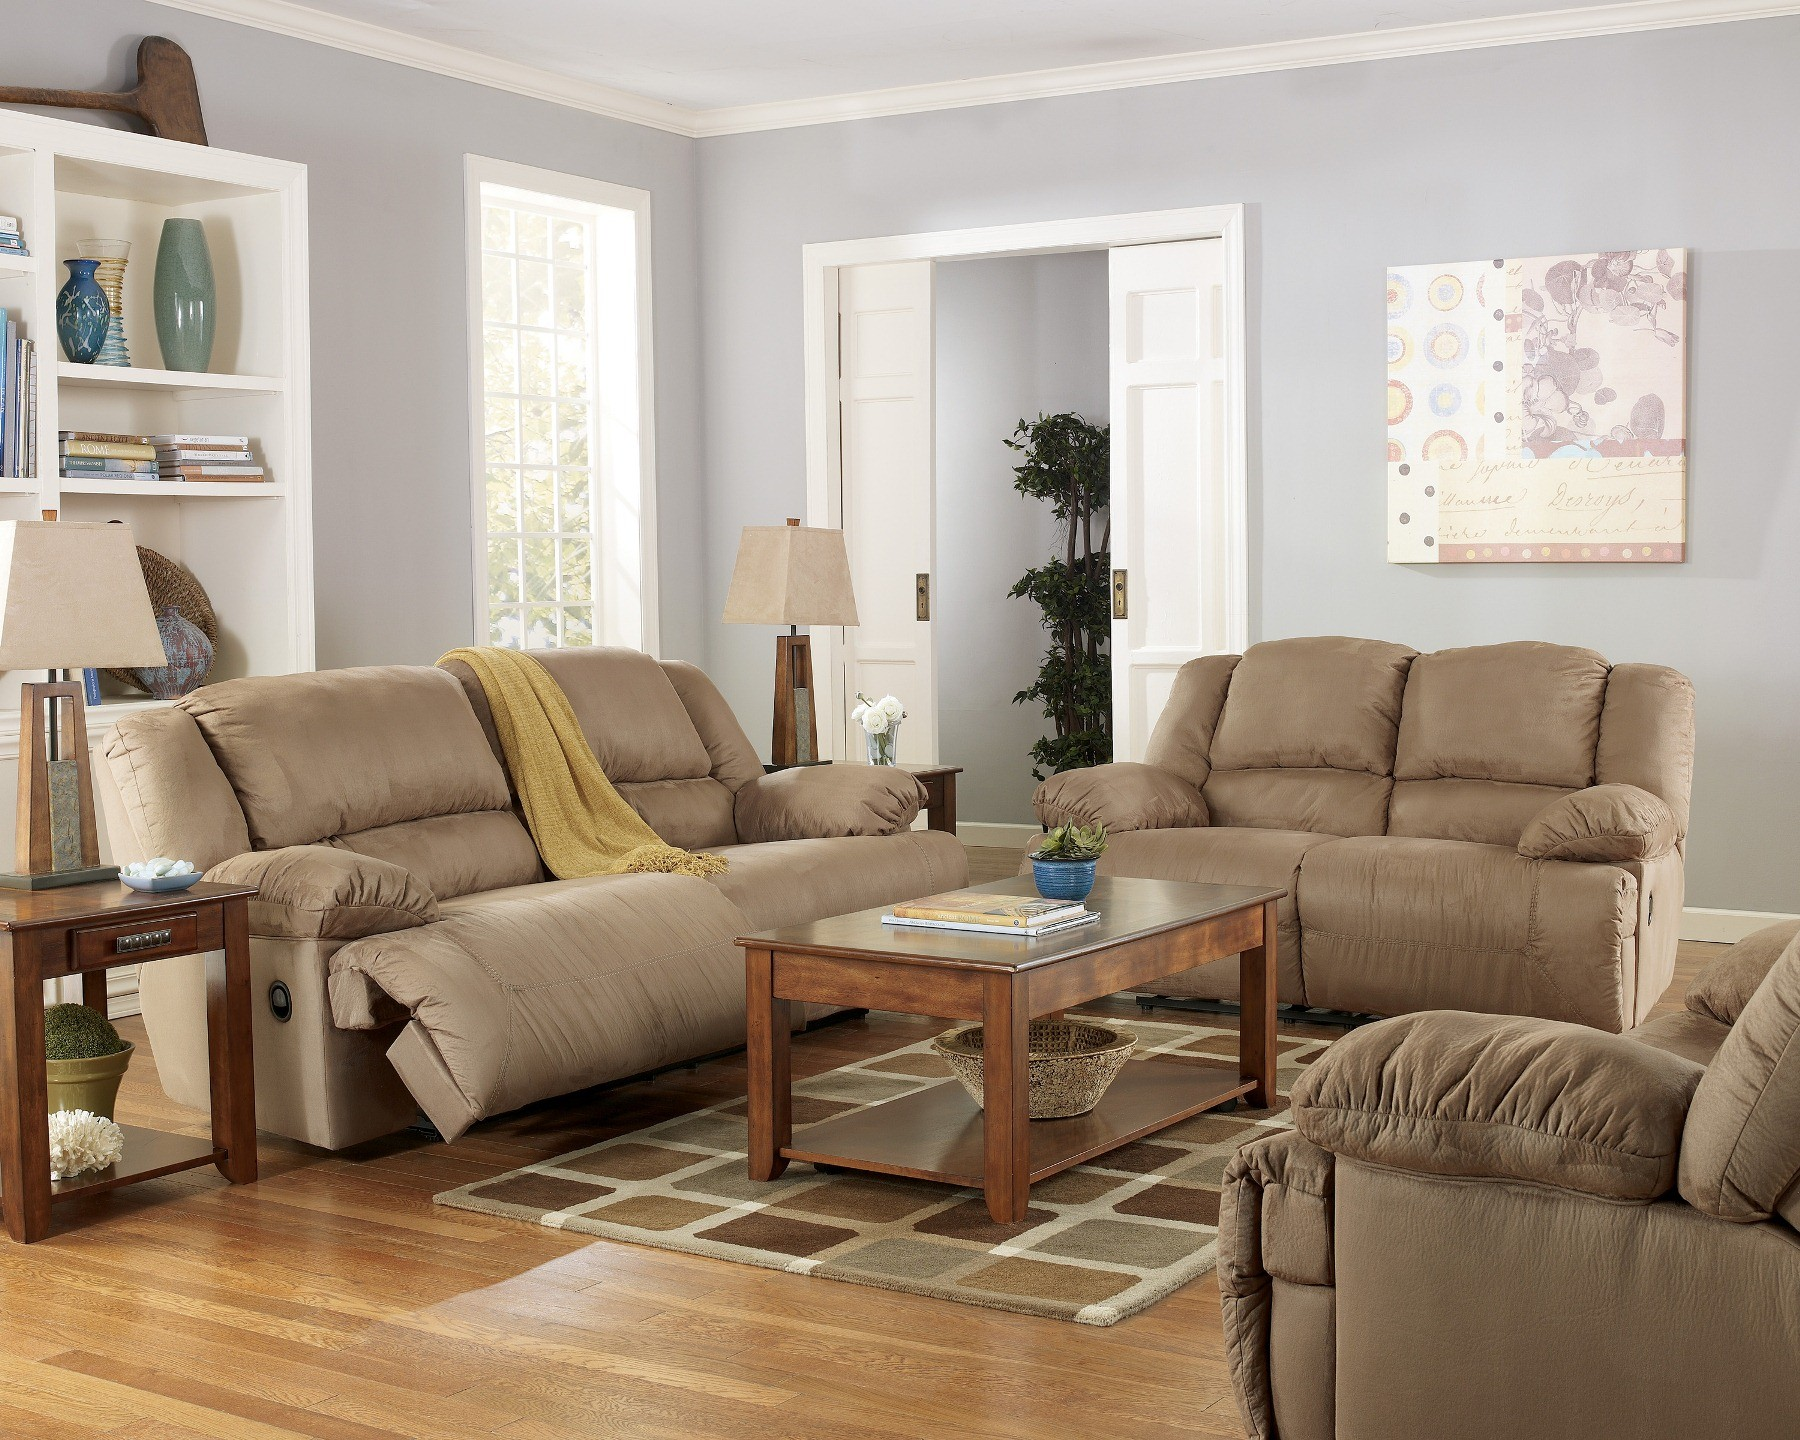 Hogan Mocha Reclining Living Room Set from Ashley  57802    Coleman     Hogan Mocha Reclining Living Room Set from Ashley  57802    Coleman  Furniture